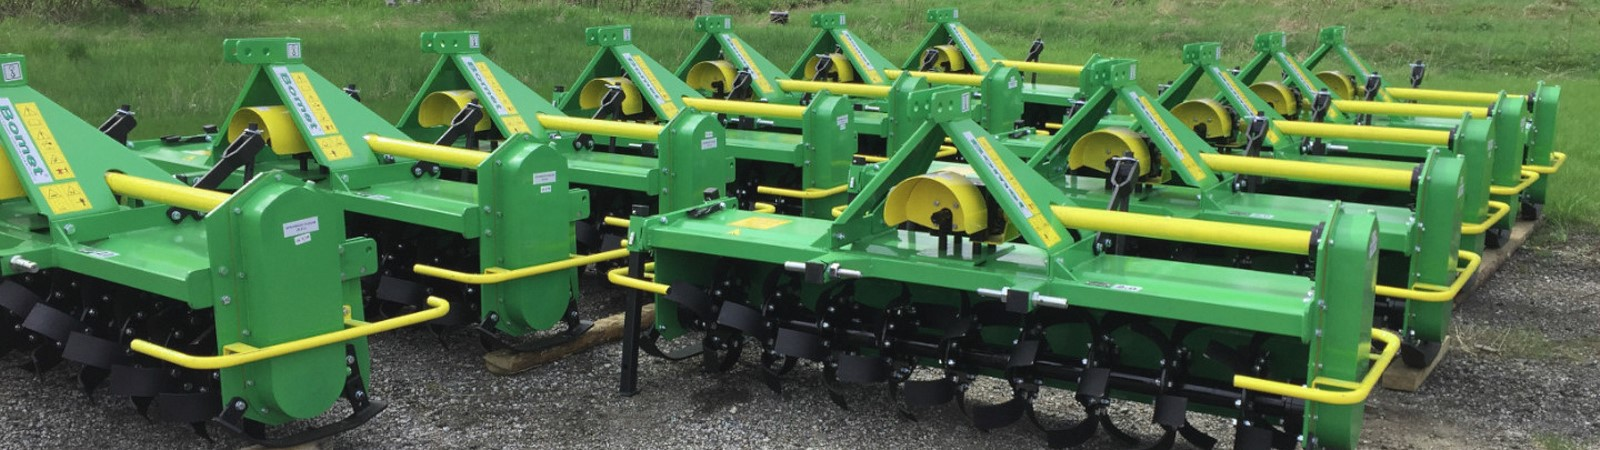 Bomet farm machines